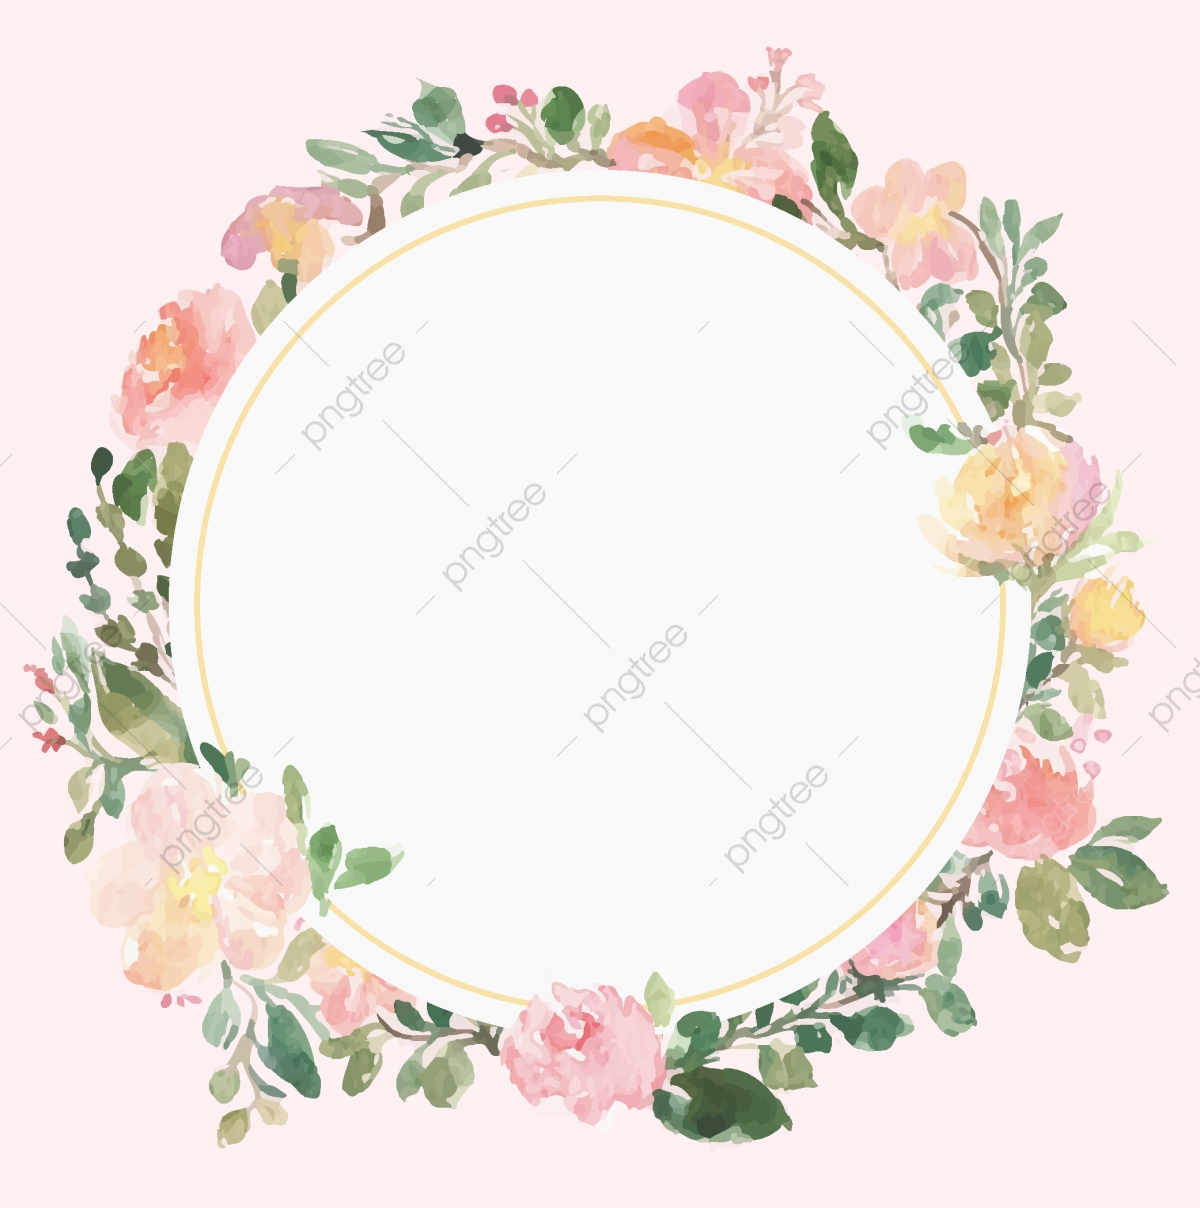 floral frame vector beautiful wreath elegant floral collection with flower watercolor floral png and vector with transparent background for free download https pngtree com freepng floral frame vector beautiful wreath elegant floral collection with 3636352 html